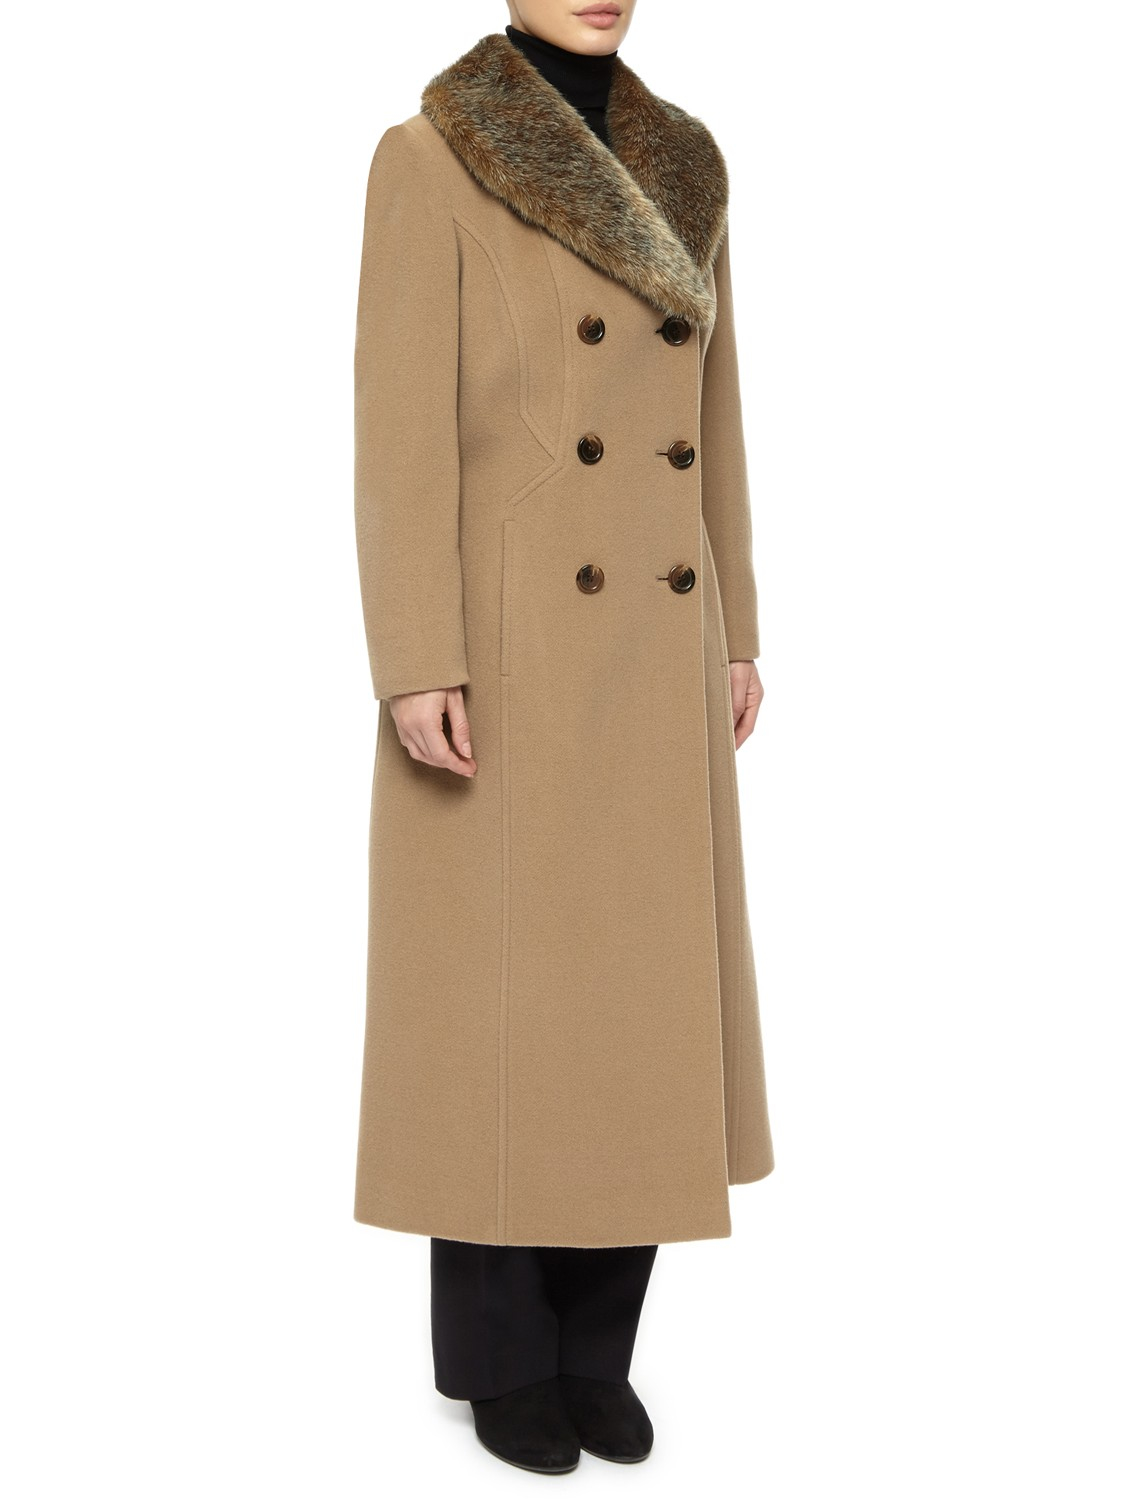 Shop Online at gassws3m047.ga for the Latest Long Coats and outerwear for Petite Women. FREE SHIPPING AVAILABLE!